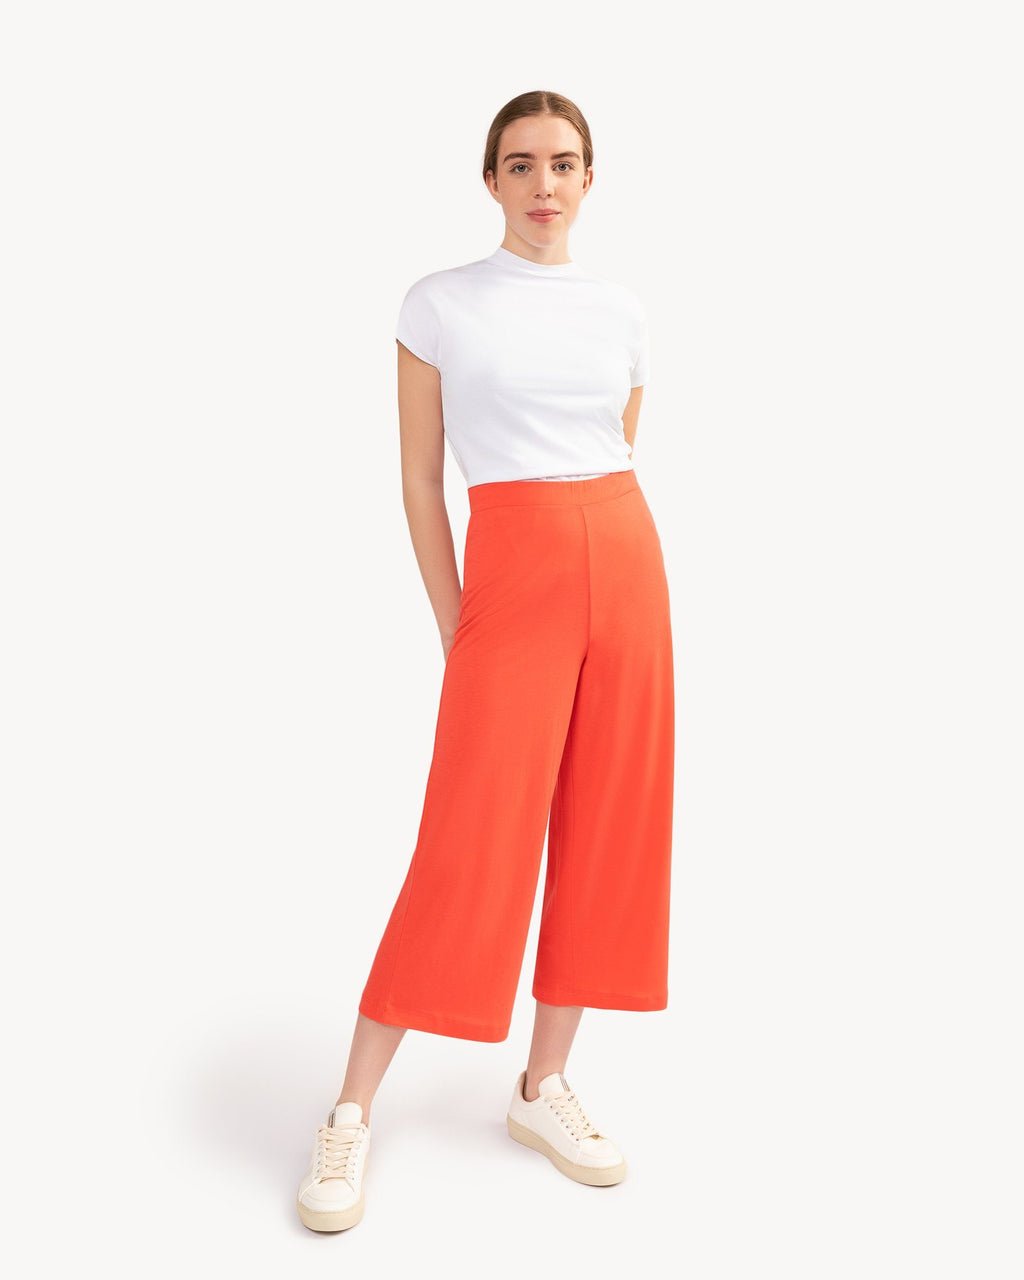 variant_2 | EN Pants Summer Red Wide Leg Women Madness | DE Hose Sommer Rot Wide Leg Damen Madness